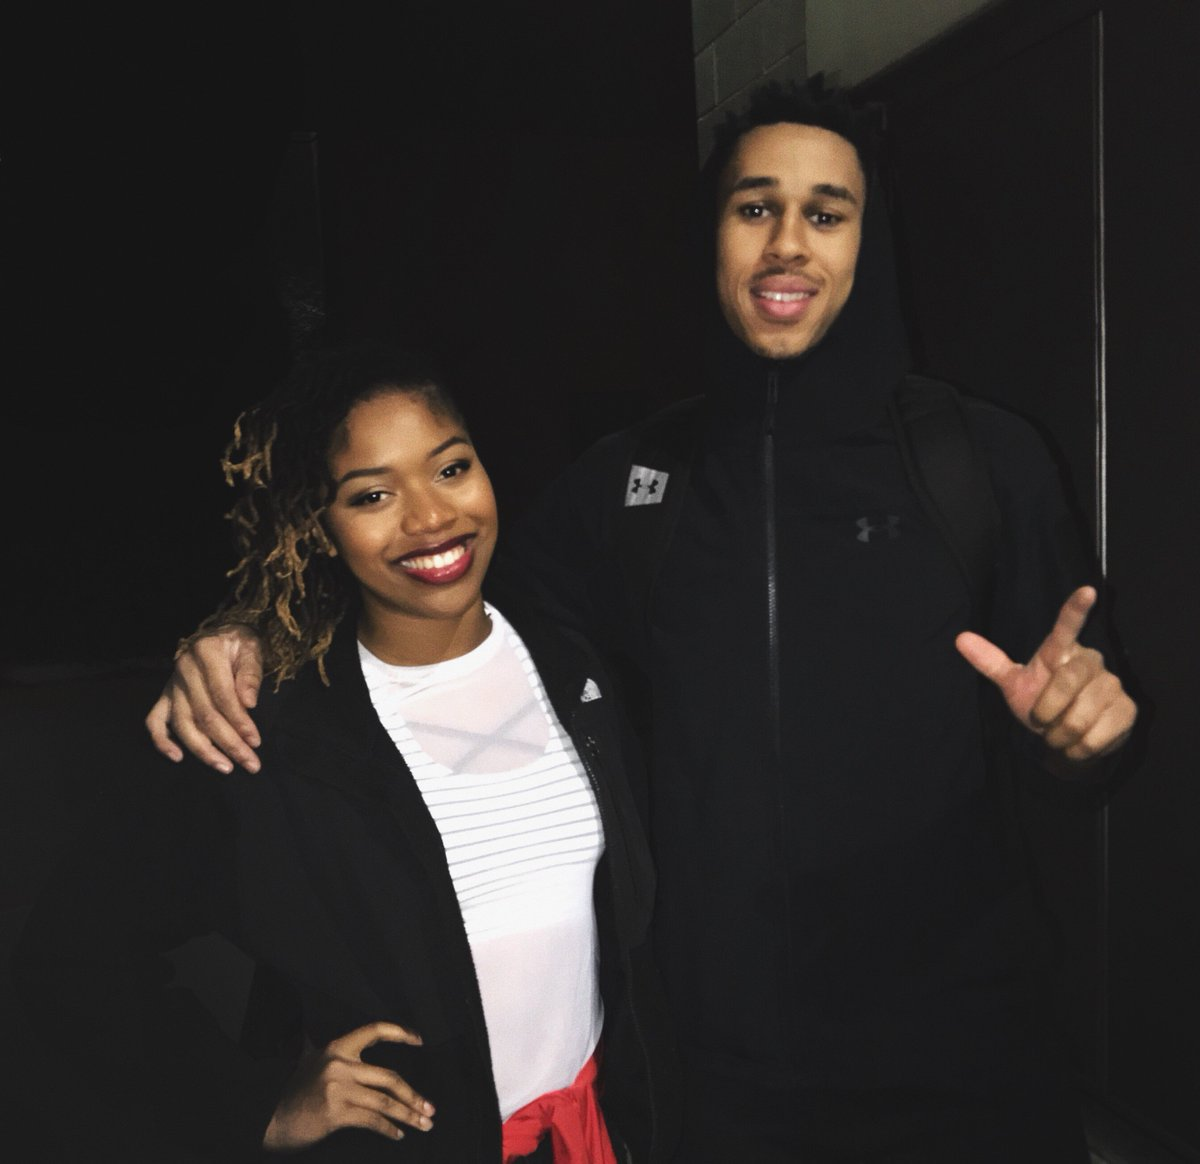 Big ups to Z!! Hes killing the game, literally🚨 Great job tonight! @zhaire_smith